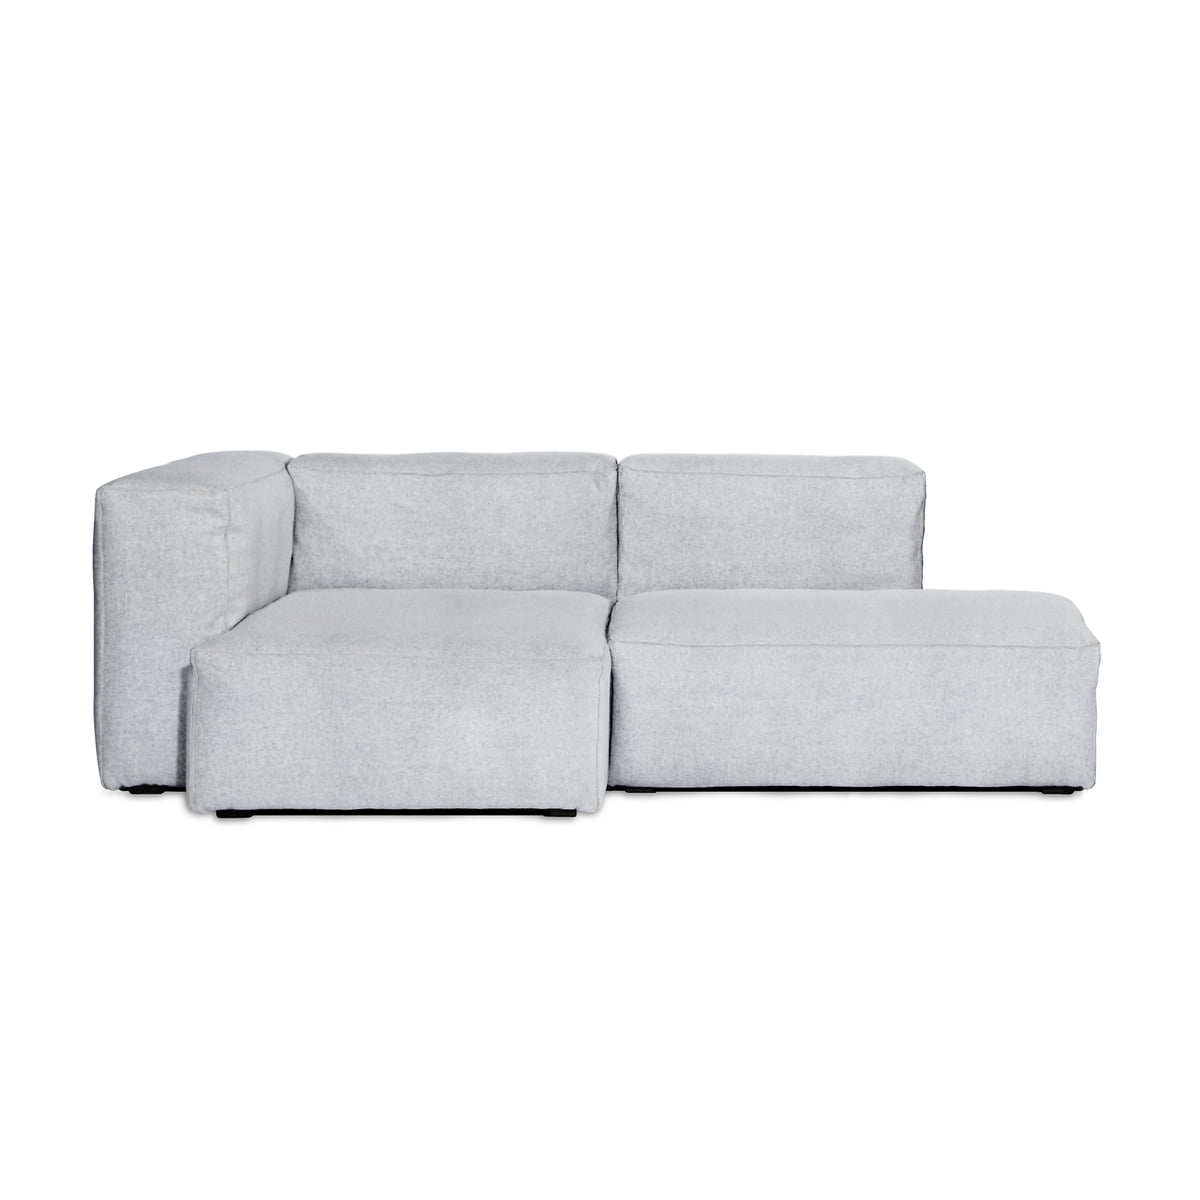 Hay mags soft modular sofa for Sofa 2 sitzer